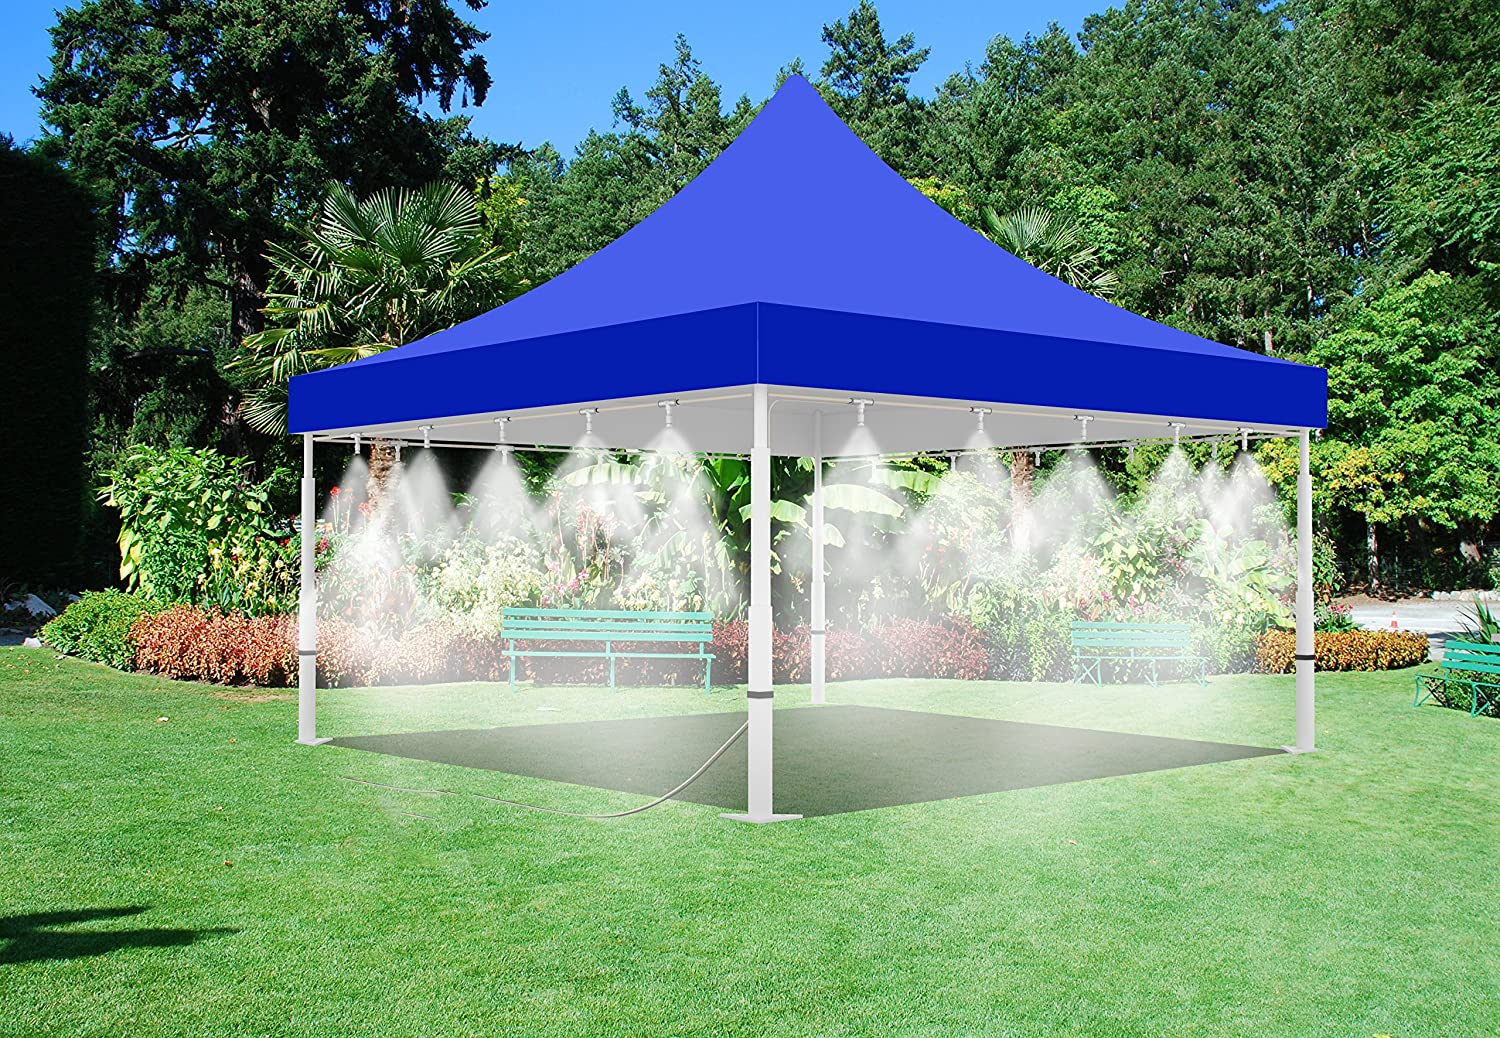 Misting Tent - 10u0027 x 20u0027 Tent with Mist System - for Outdoor Events - with Low Pressure Misting System - 20 Nozzle Misting System - Easy to Set-Up (10u0027 x ... & Amazon.com: Misting Tent - 10u0027 x 20u0027 Tent with Mist System - for ...